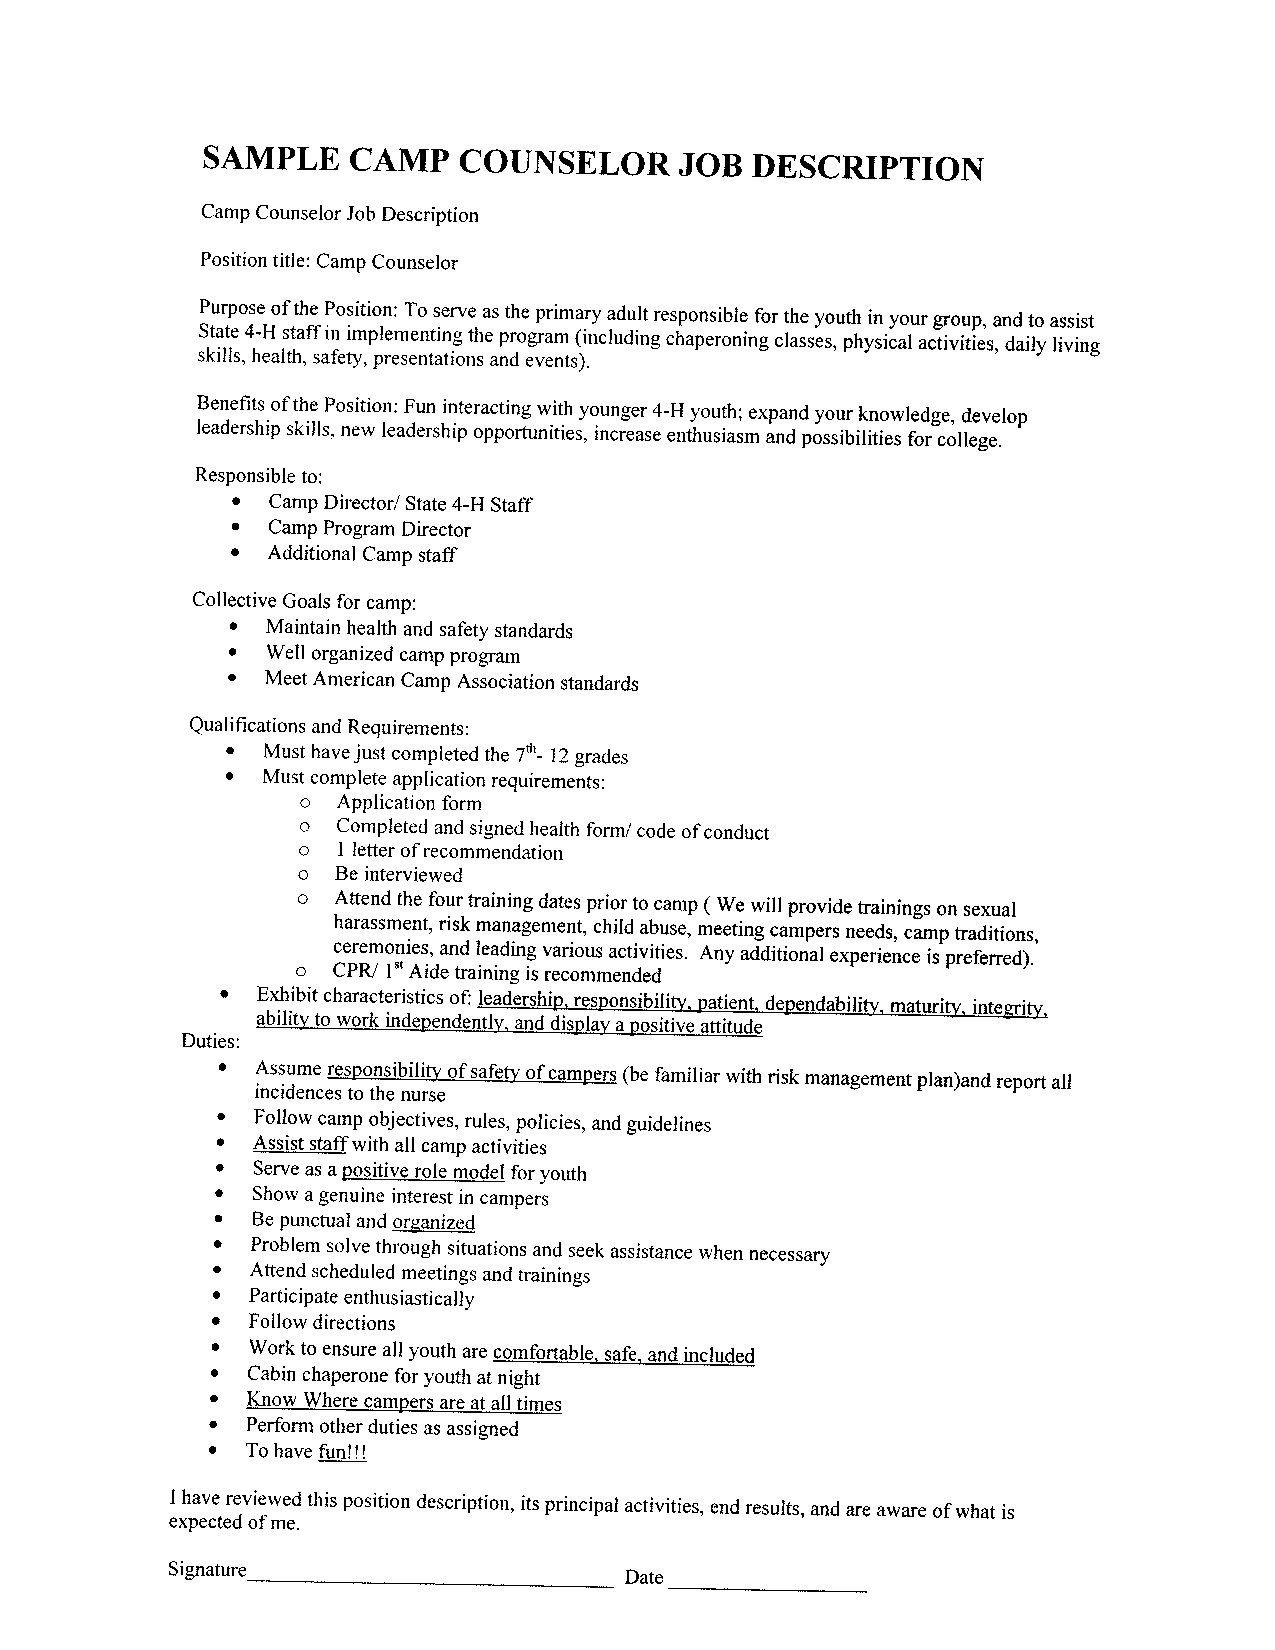 School Counselor Resume Examples Best Of Resume Examples Hd Image Floss Papers Camp Counselor Job Description Counselor Job Description Job Resume Examples